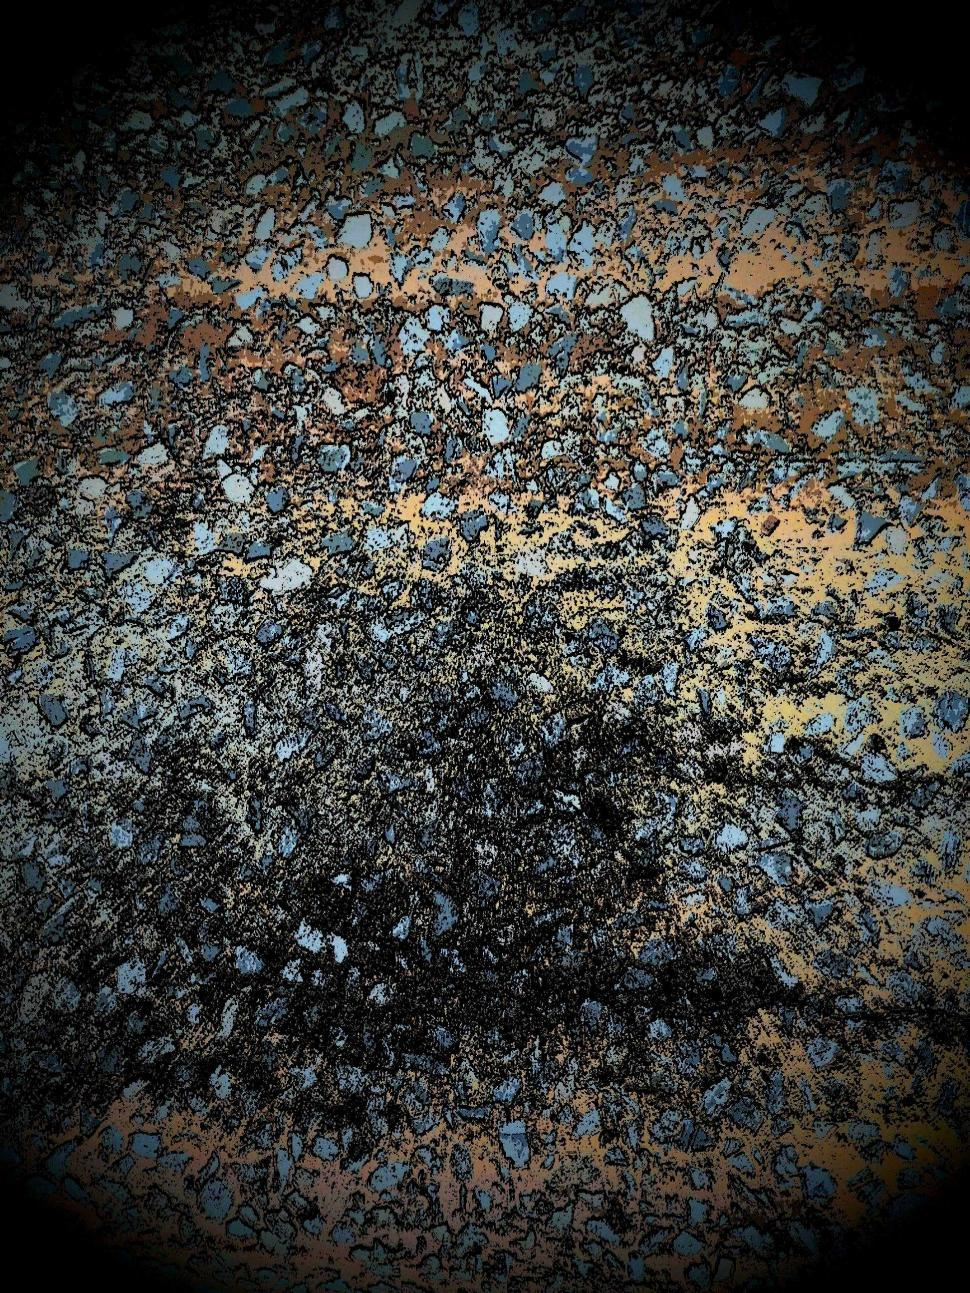 Download Free Stock HD Photo of Speckled Grunge Background Online